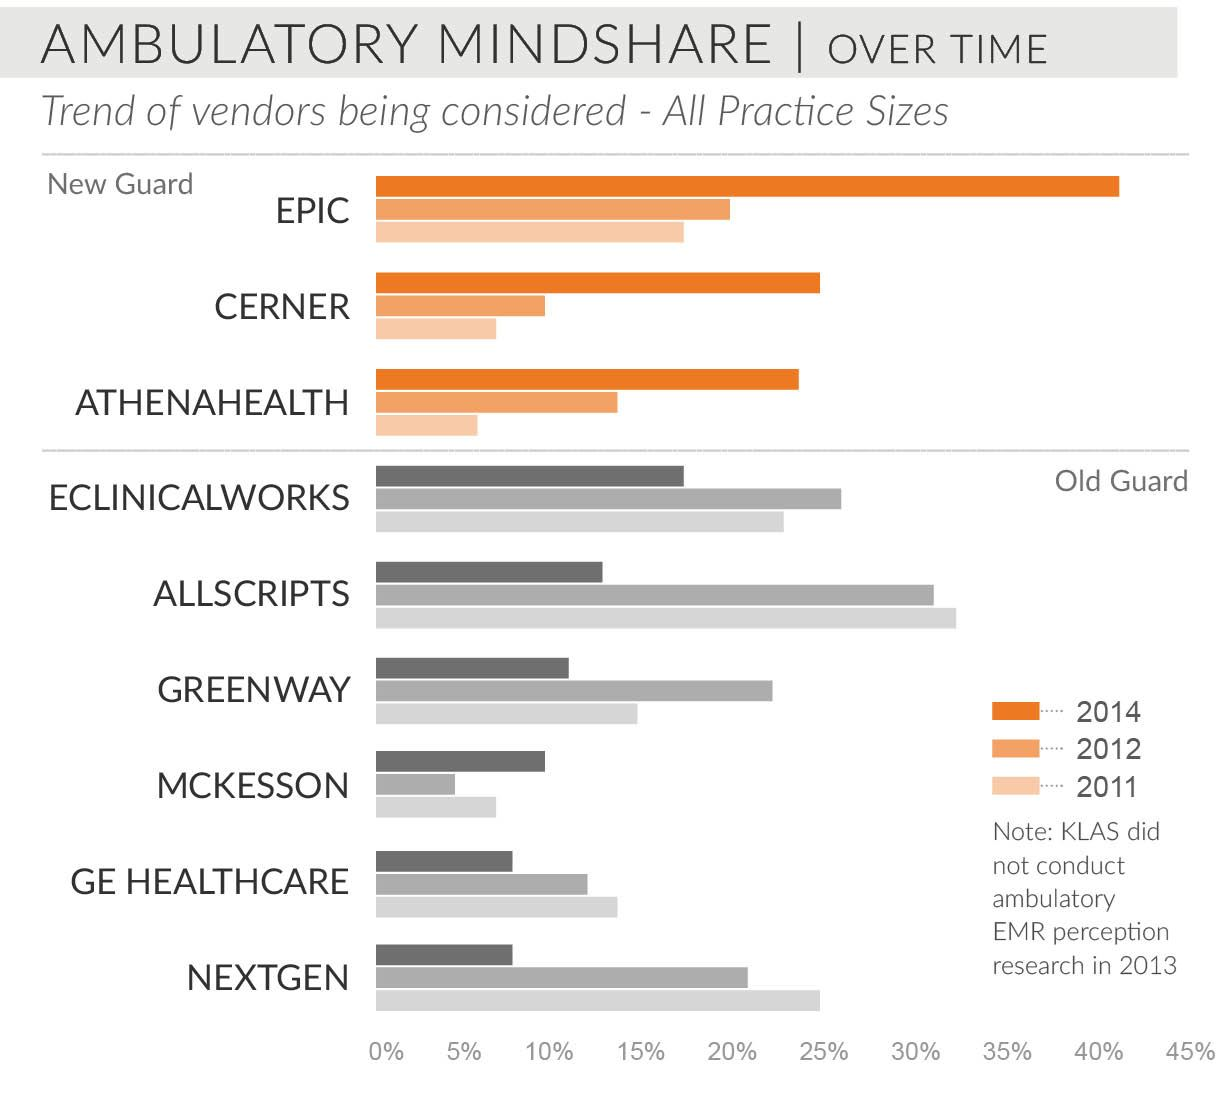 ambulatory mindshare over time trend of vendors being considered